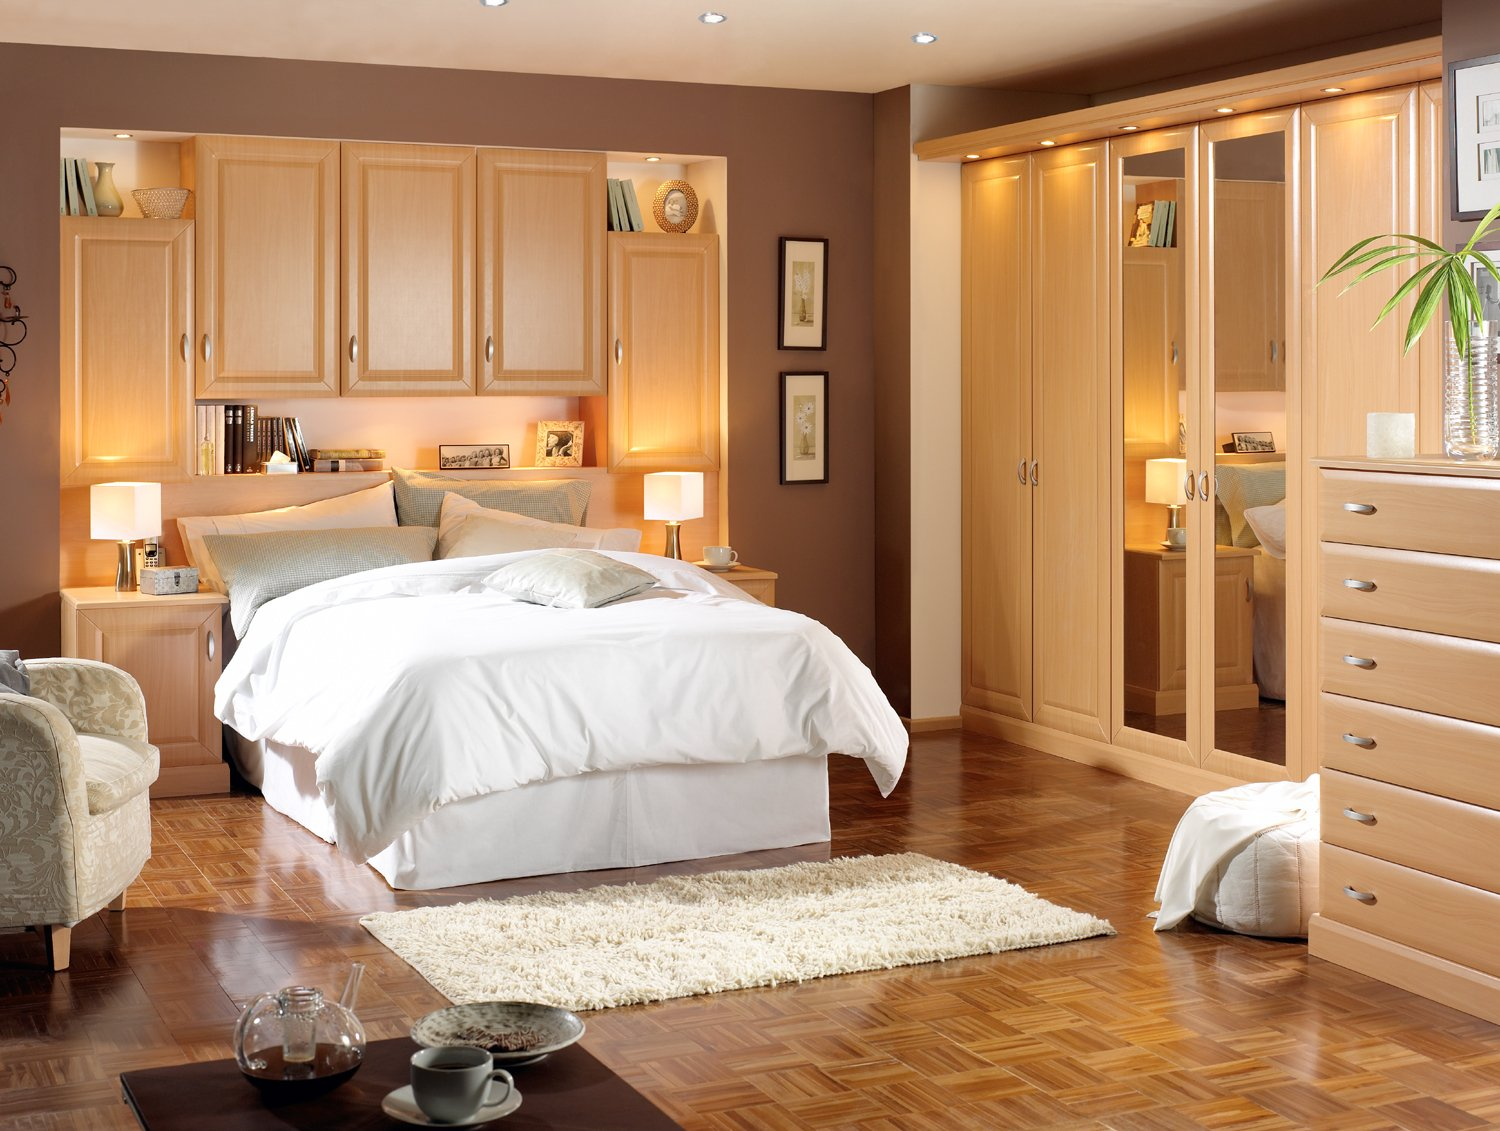 Bedrooms cupboard designs pictures an interior design for Interior designs for bedrooms ideas